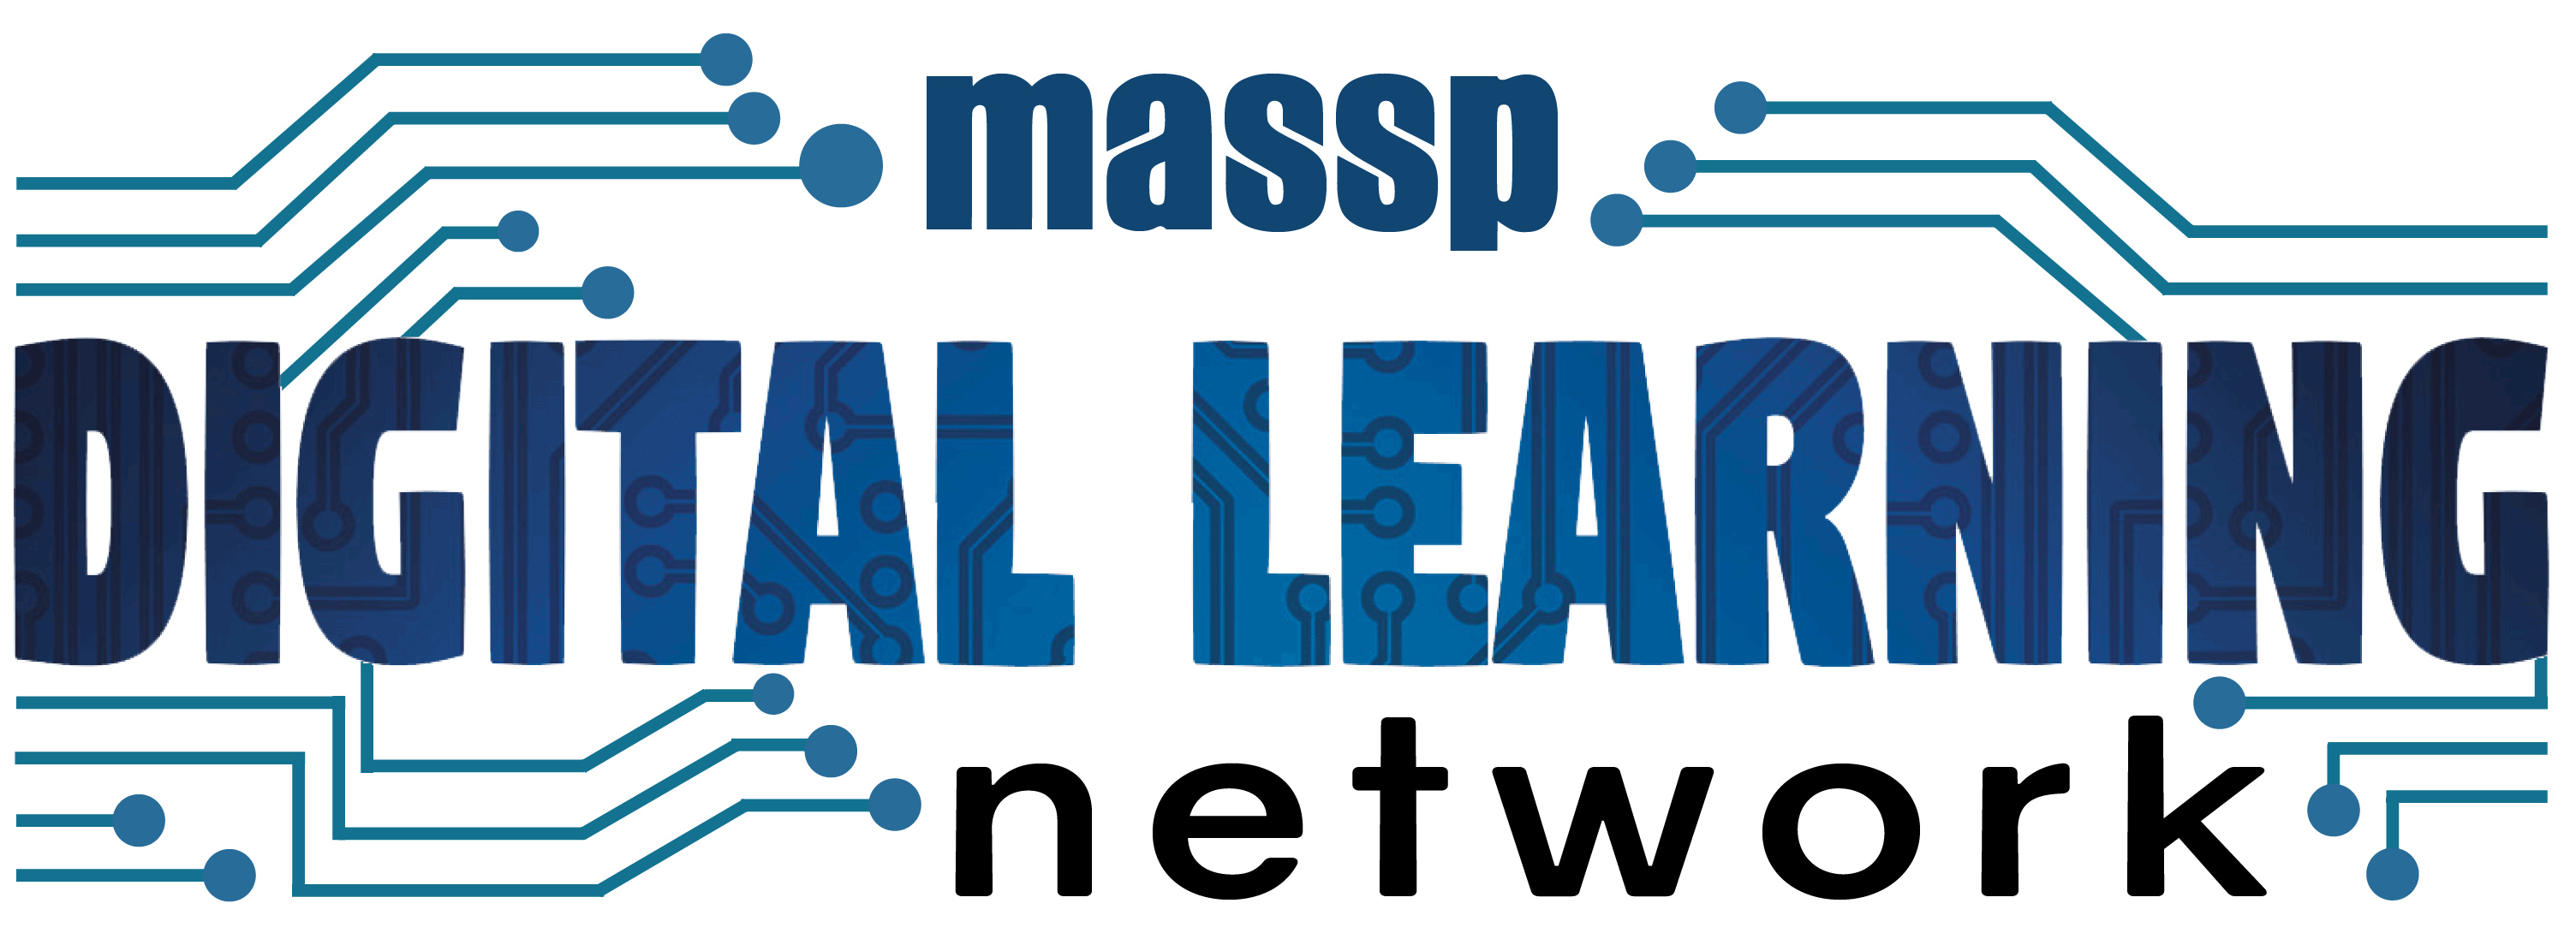 Digital Learning Network logo